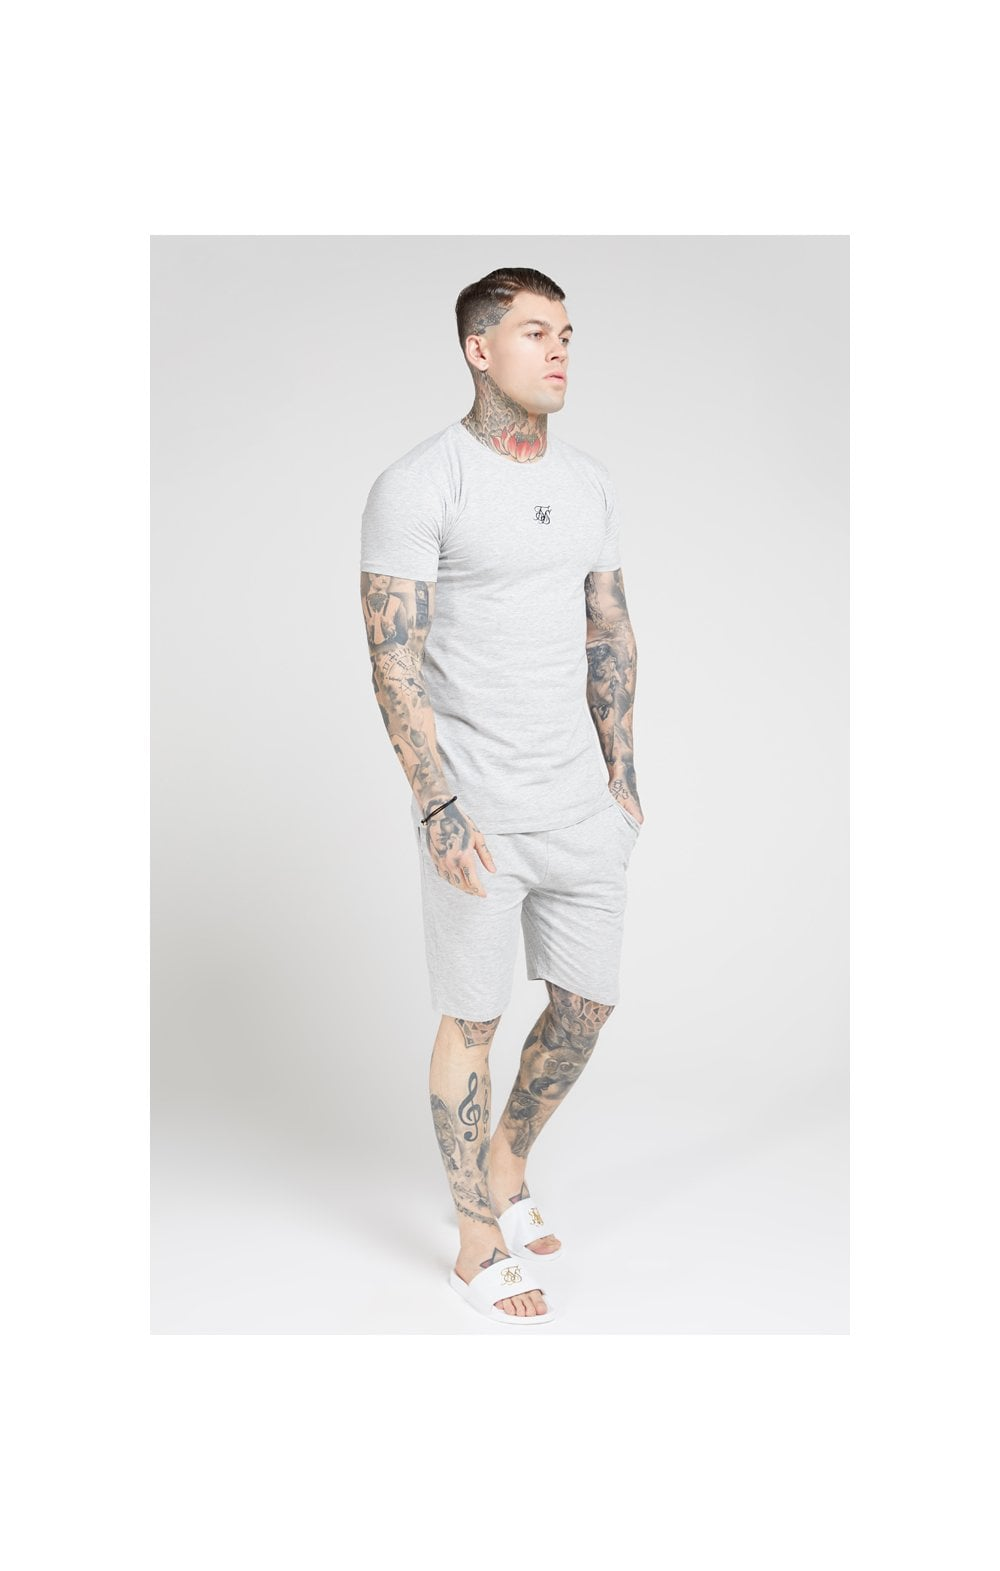 SikSilk Lounge Tee - Black & Grey (2 Pack) - 1 Grey Tee & 1 Black Tee (5)